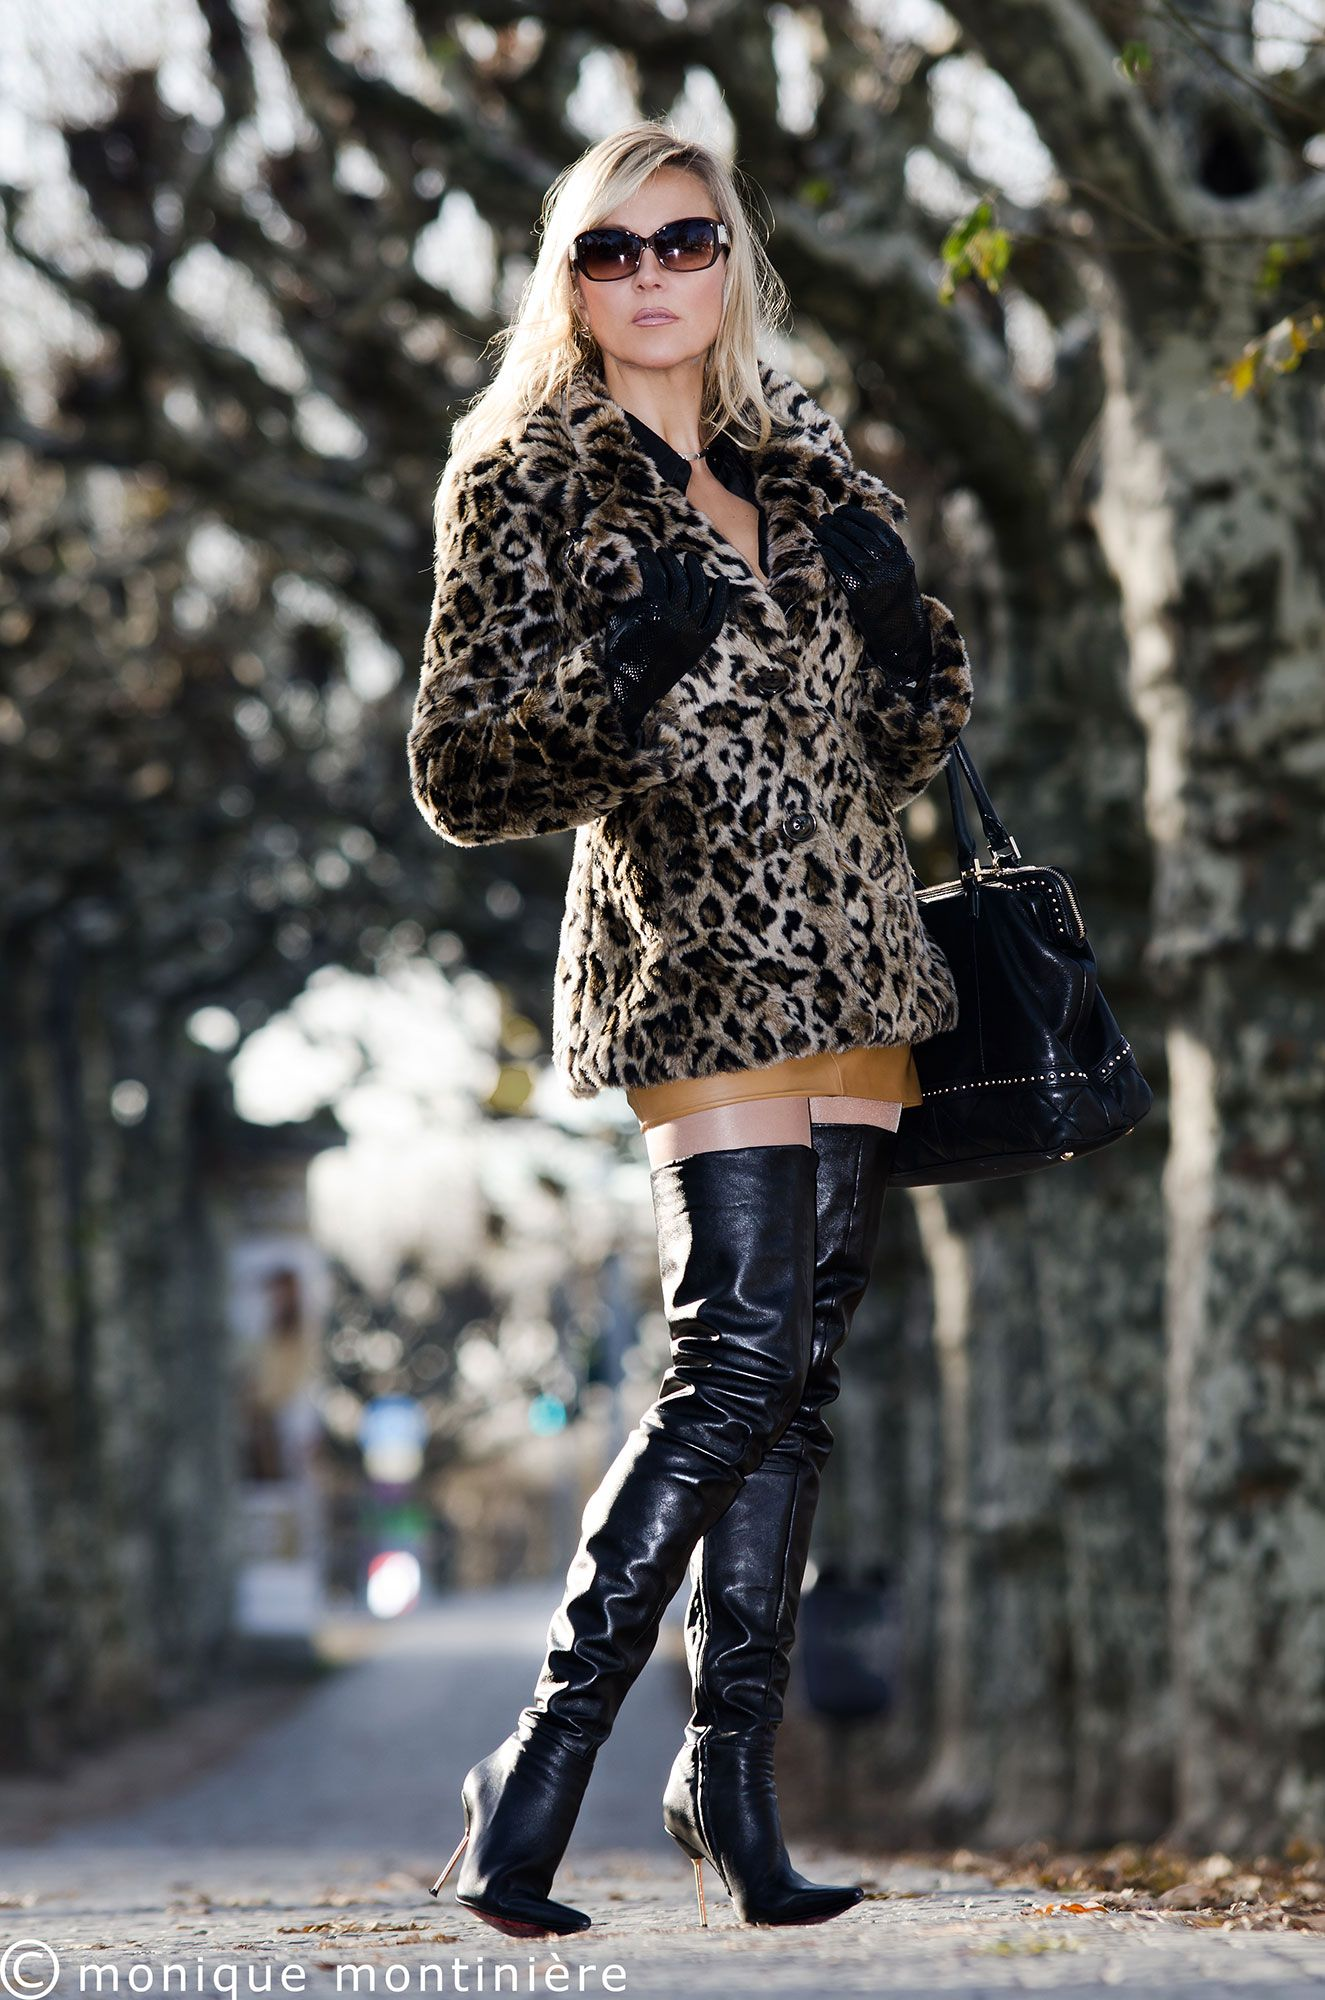 Monique Montiniere in AROLLO Thigh High Boots Stiletto ...